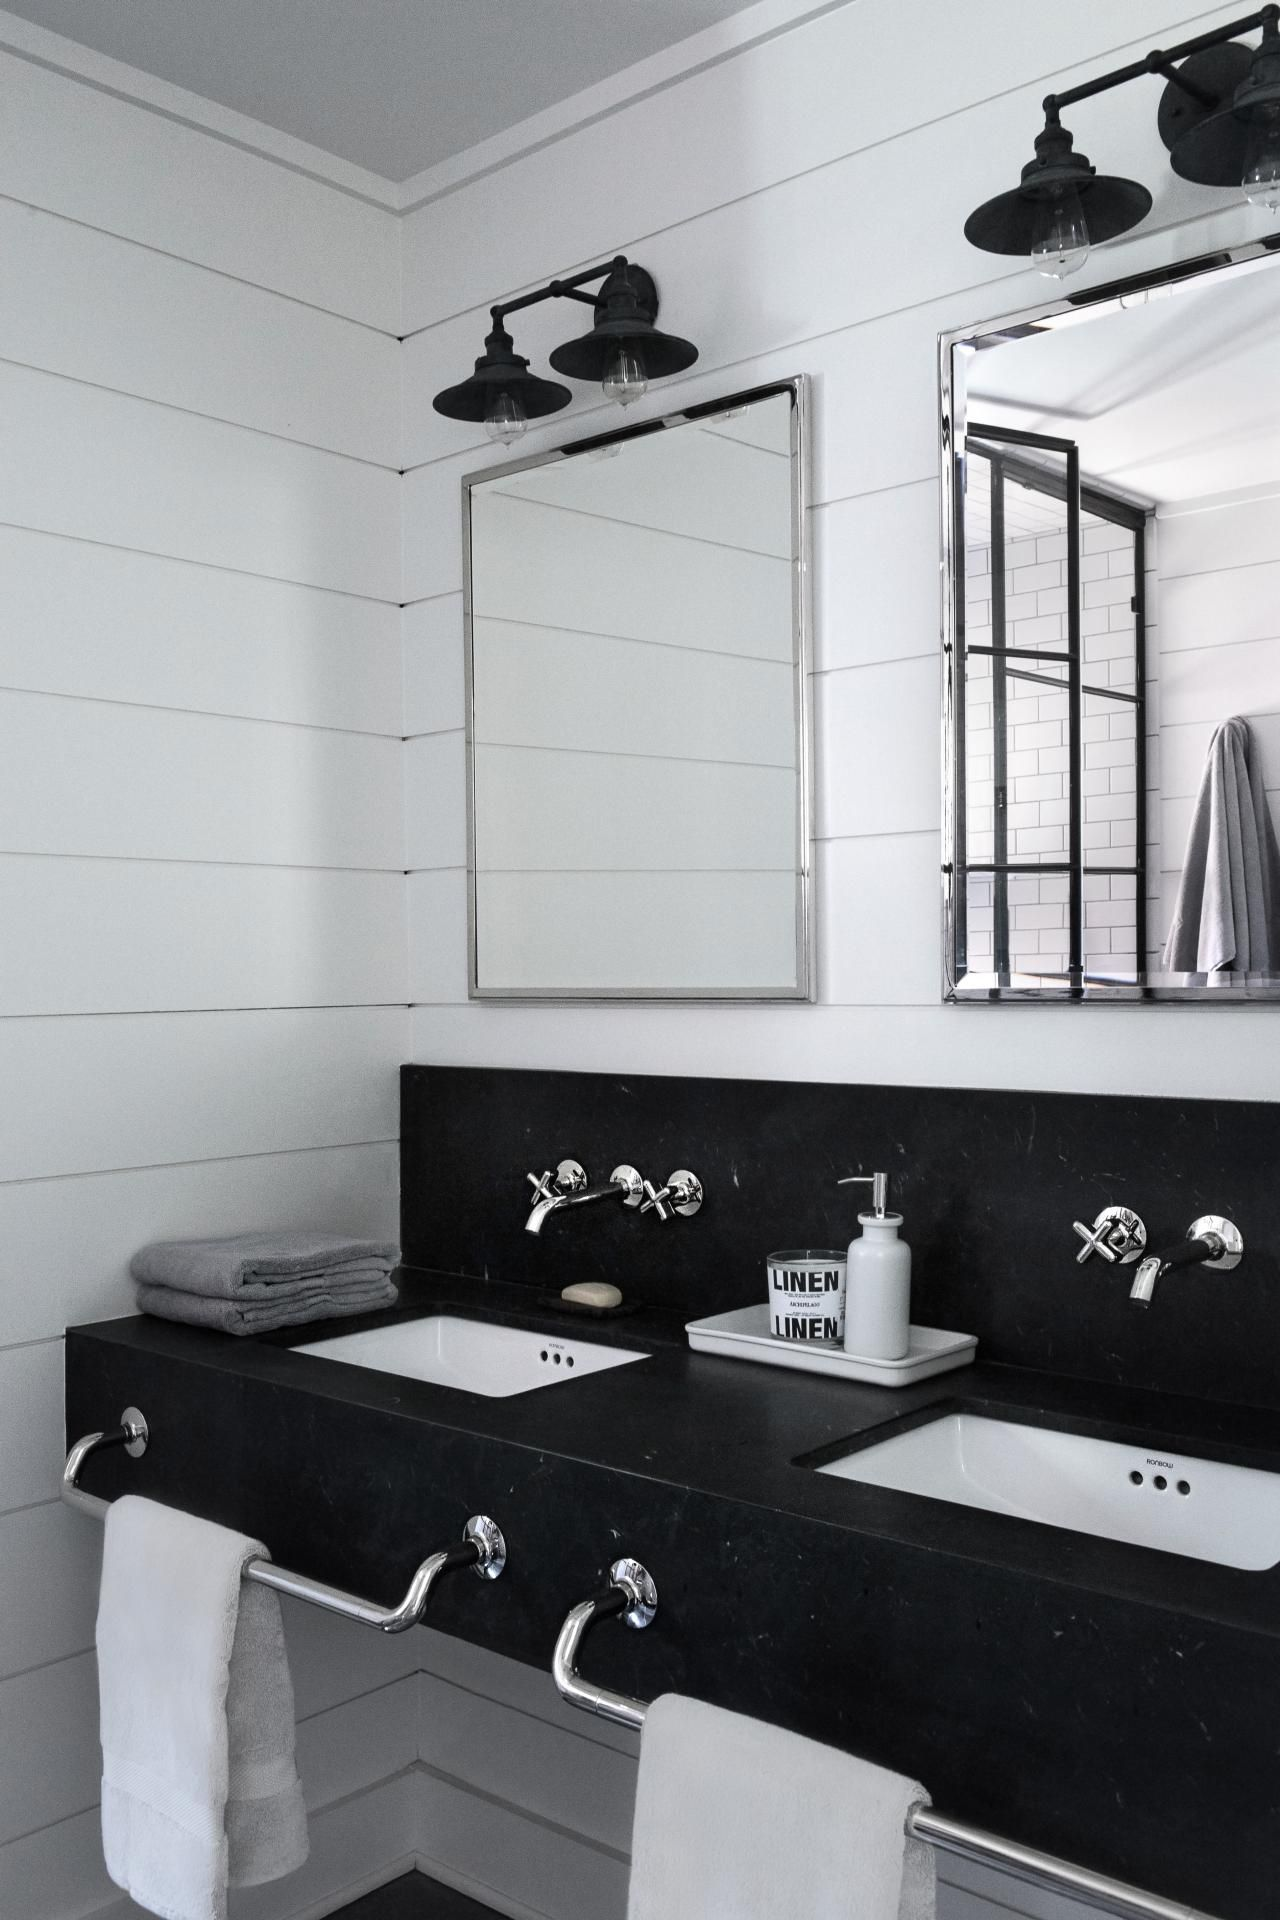 Trends We\'re Loving: Wall-Mounted Faucets | Bathrooms | Pinterest ...